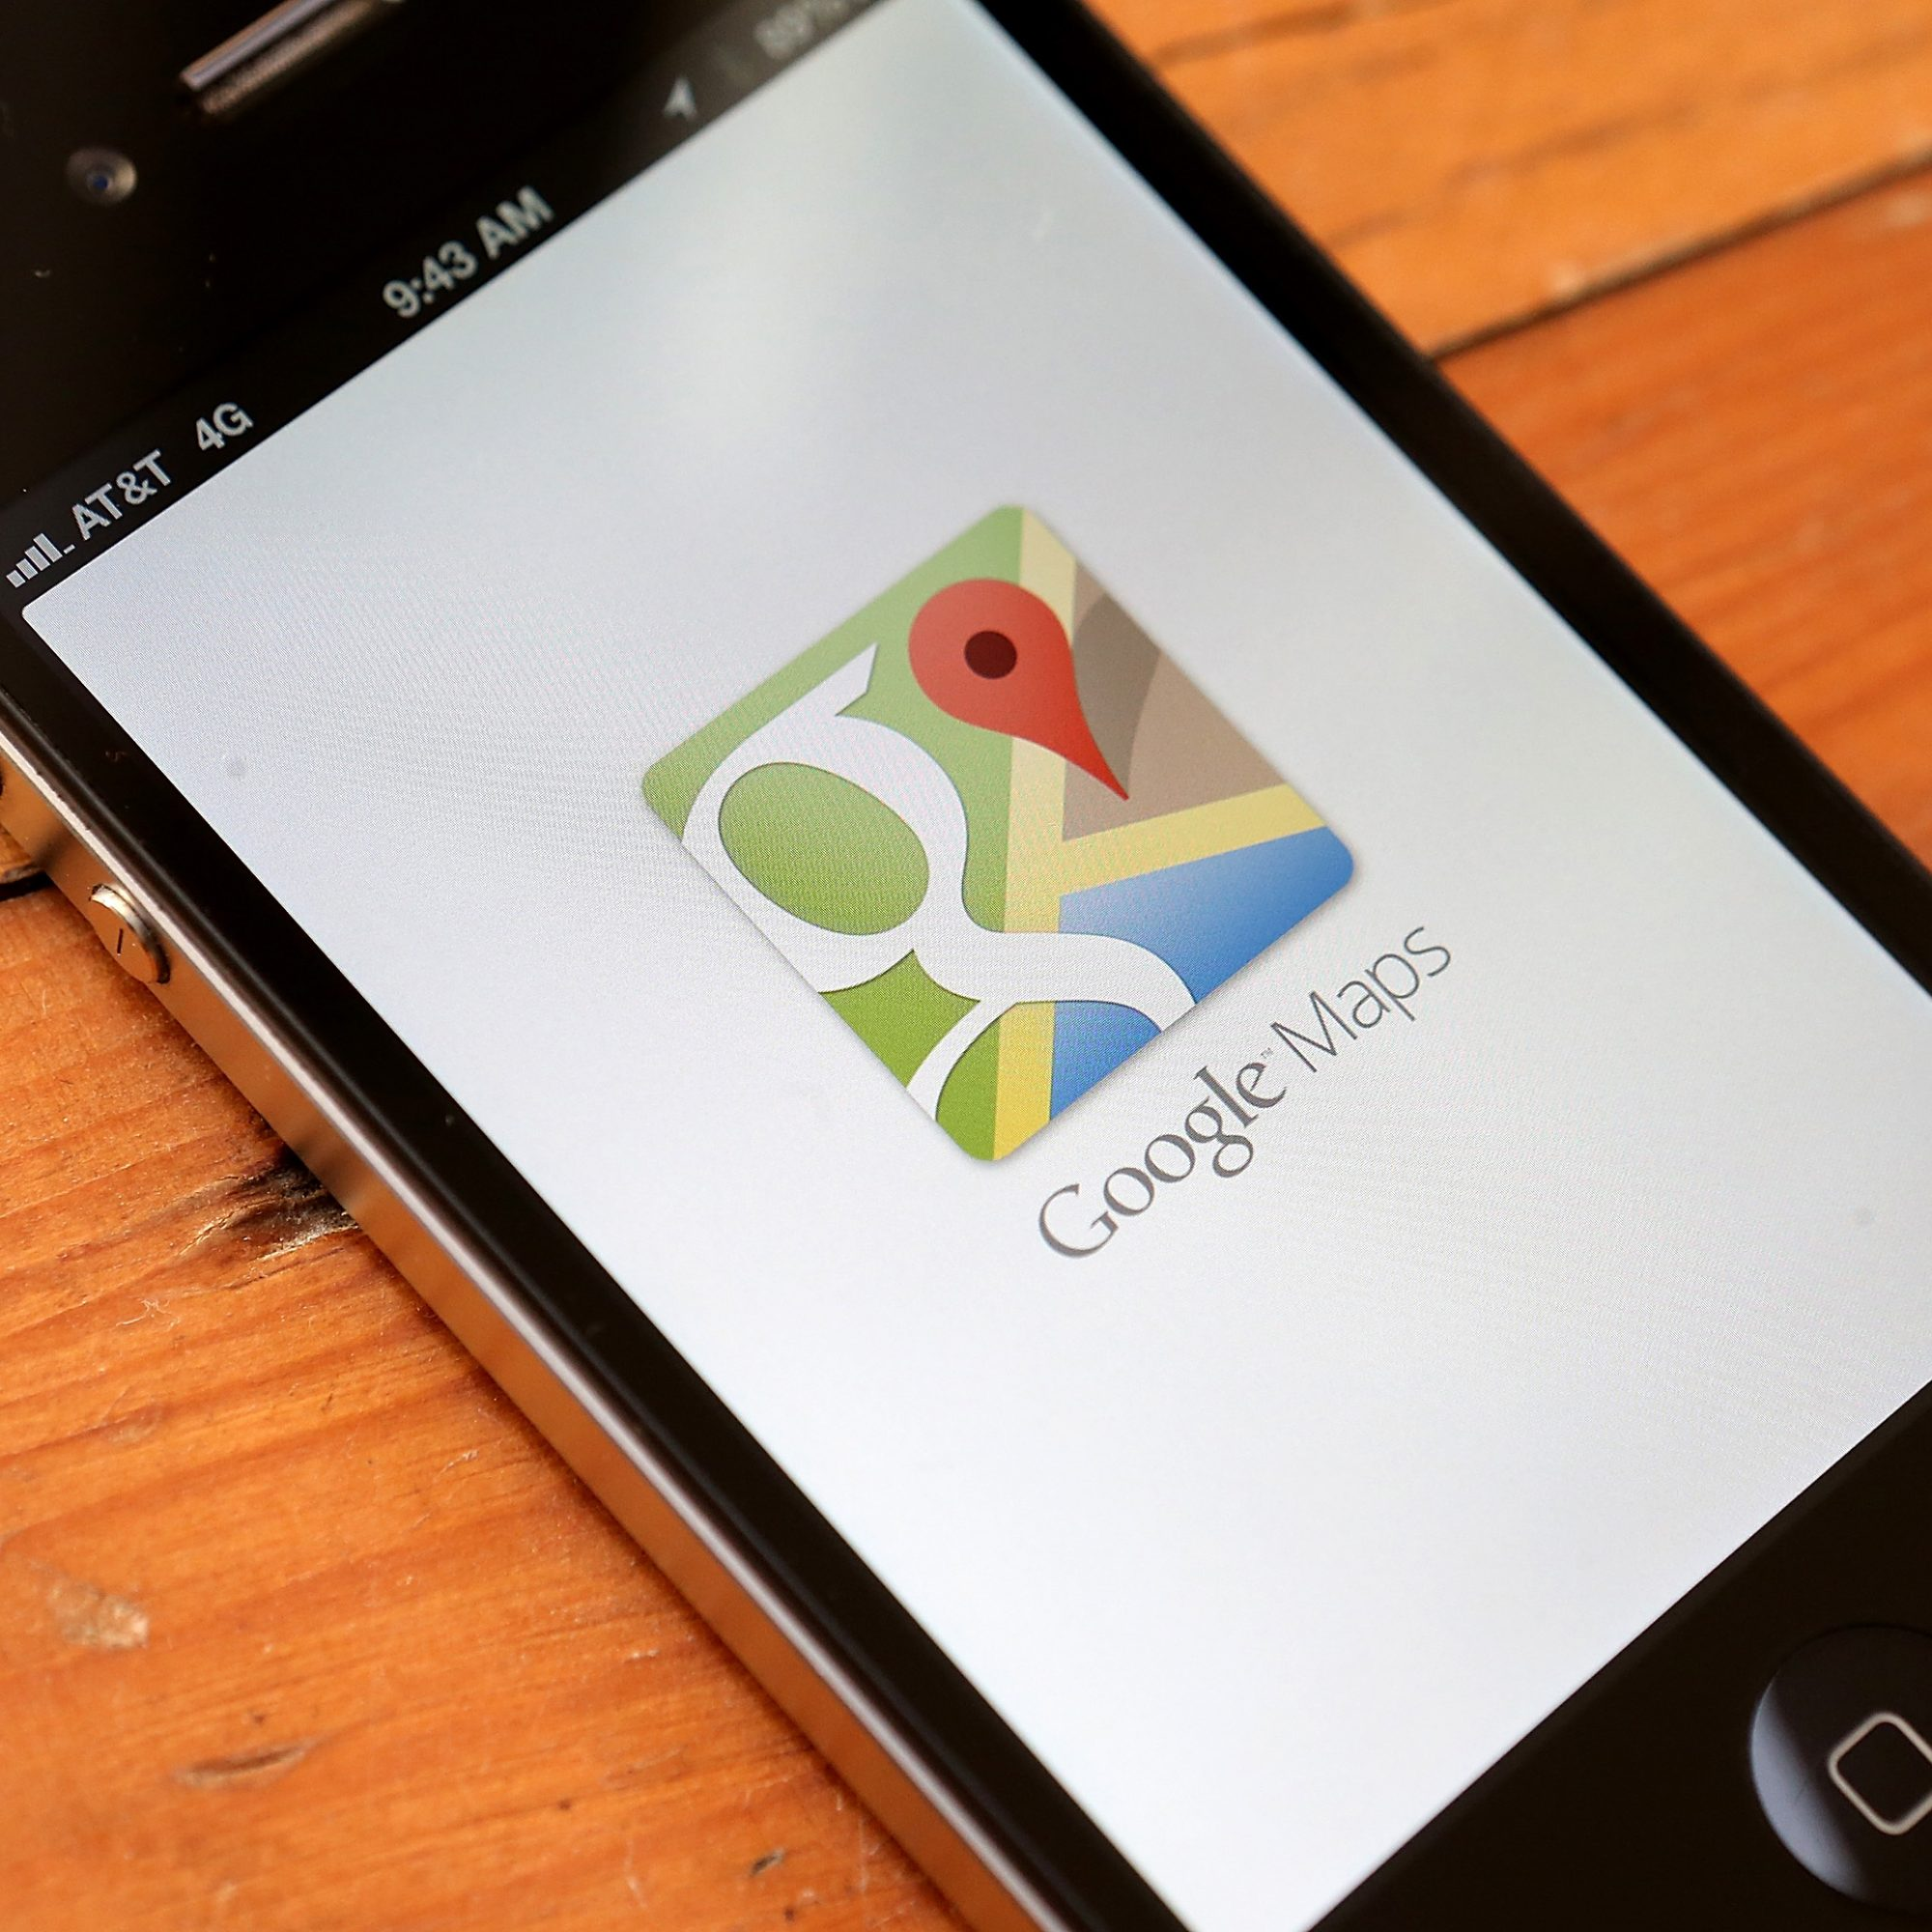 iPhone Users Can Order Dinner Straight from Google Maps